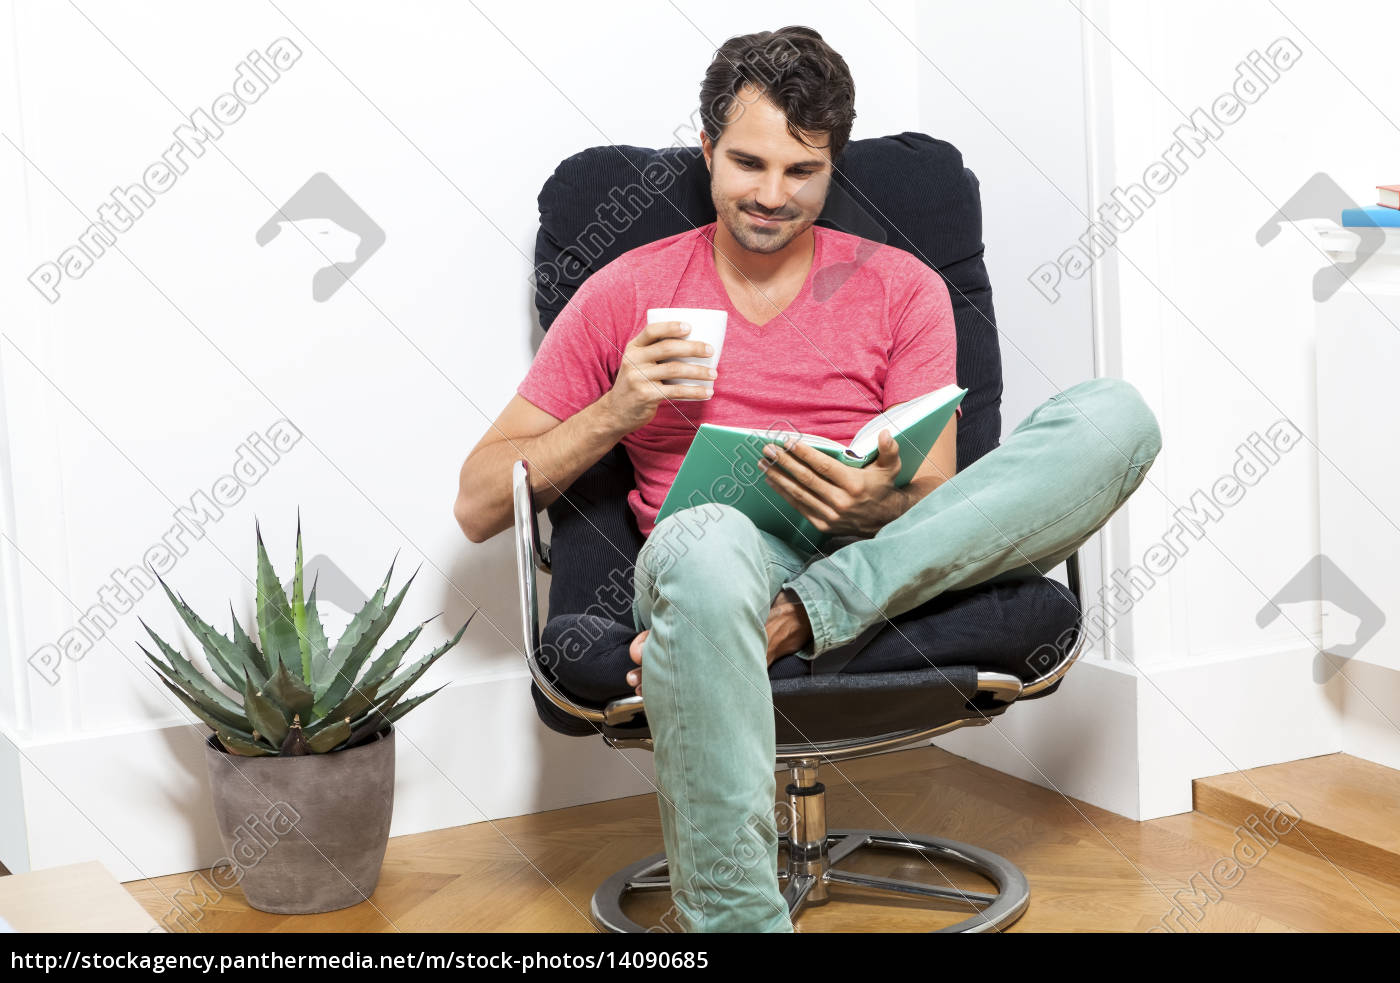 young, man, in, leisure, clothes, relaxes - 14090685